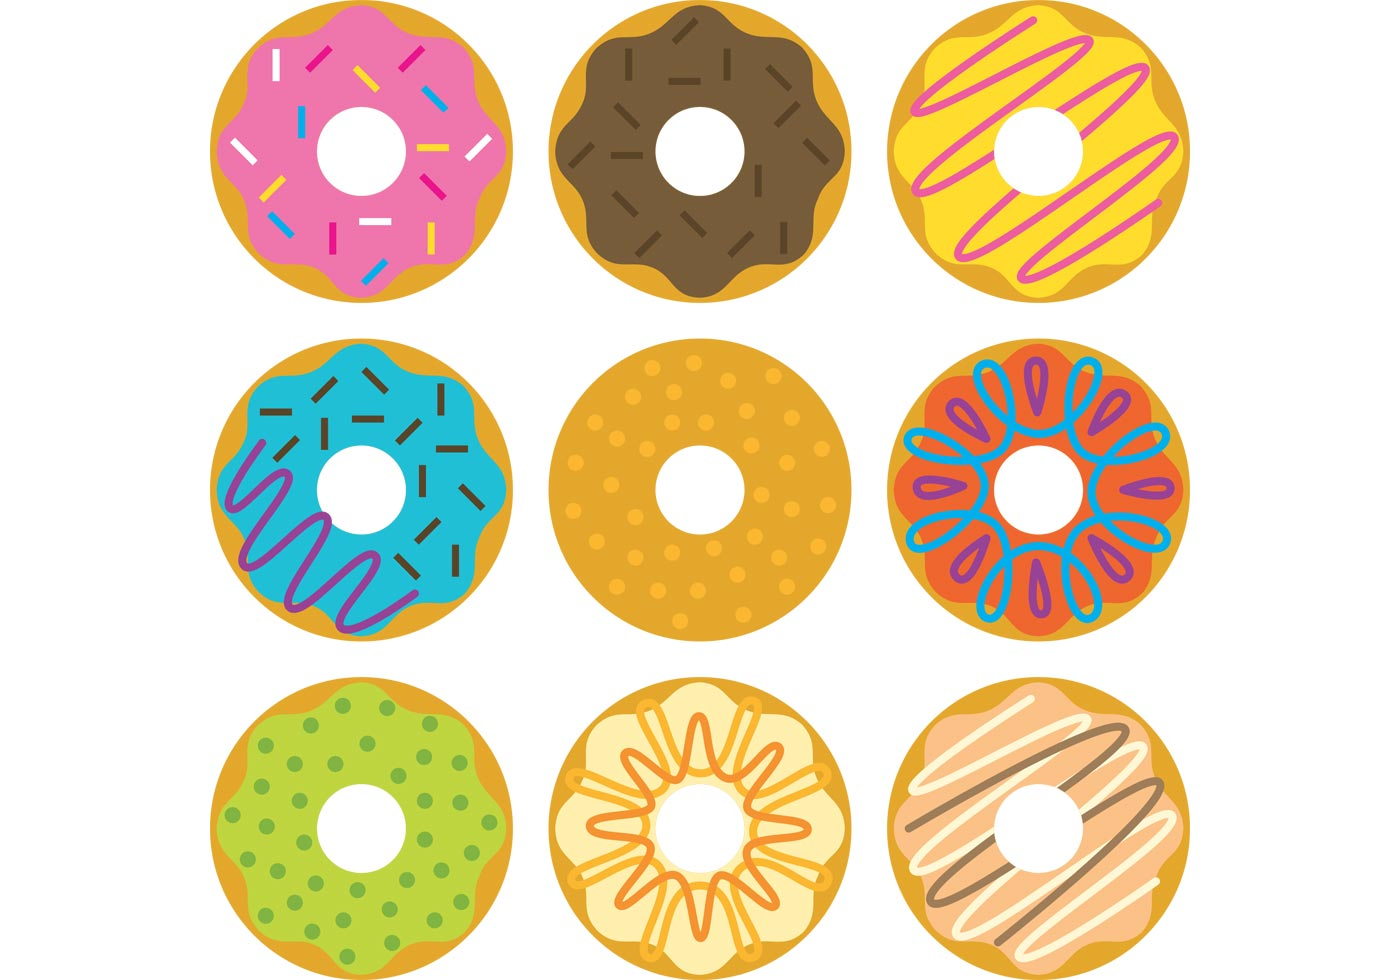 free vector donuts illustrations download free vector donut clipart pics donut clip art free